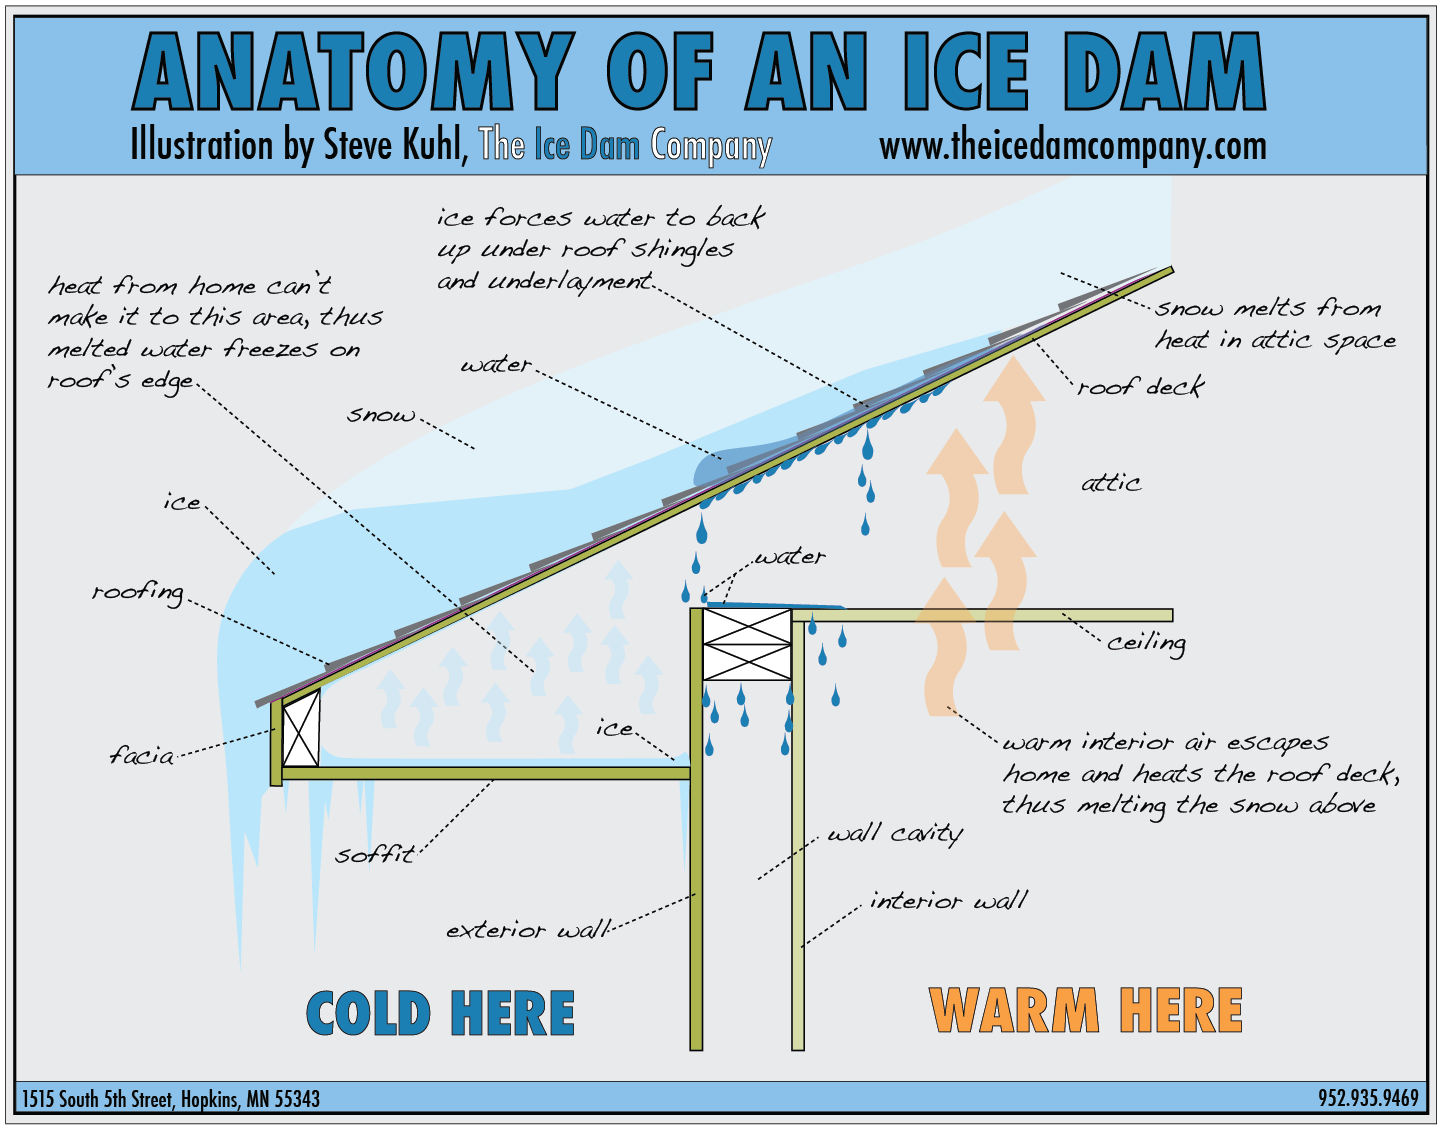 Anatomy-of-an-ice-dam